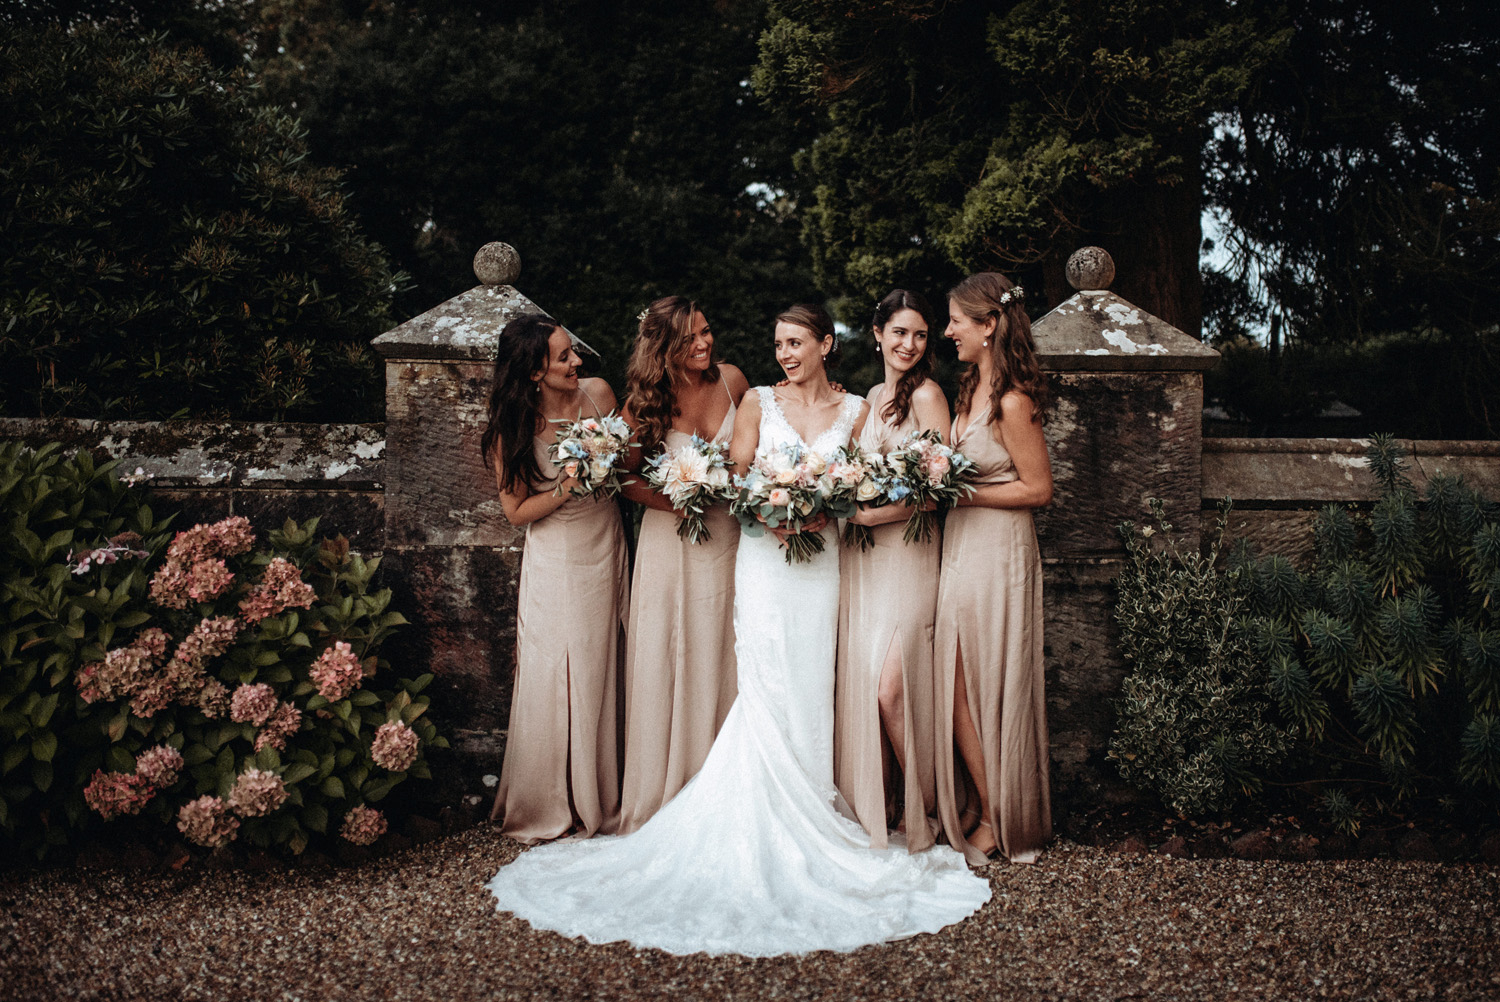 Vintage Wedding Dresses East Sussex: Country Wedding At Wadhurst Castle With Suppliers From RMW